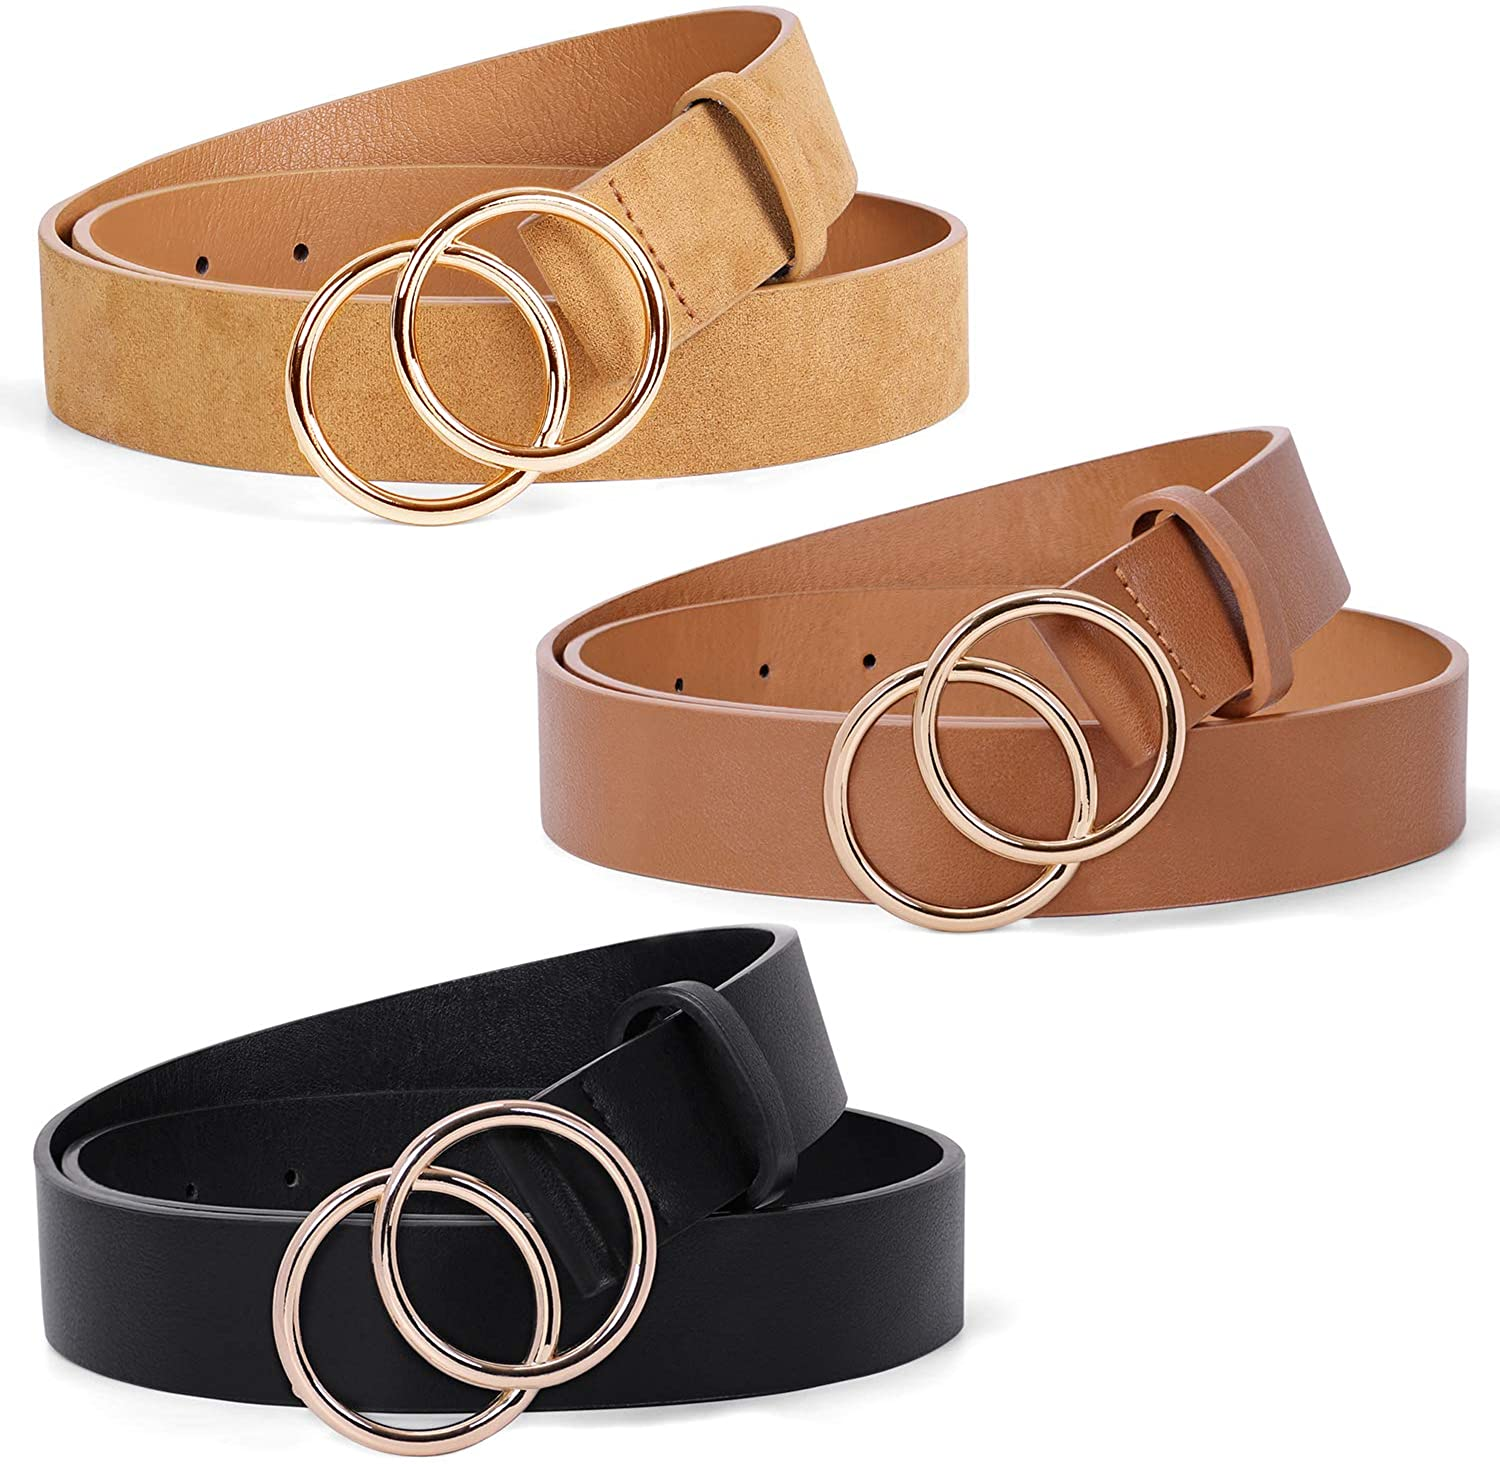 3 Pack Double Ring Belt for Women, Faux Leather Jeans Belts with Golden Circle Buckle